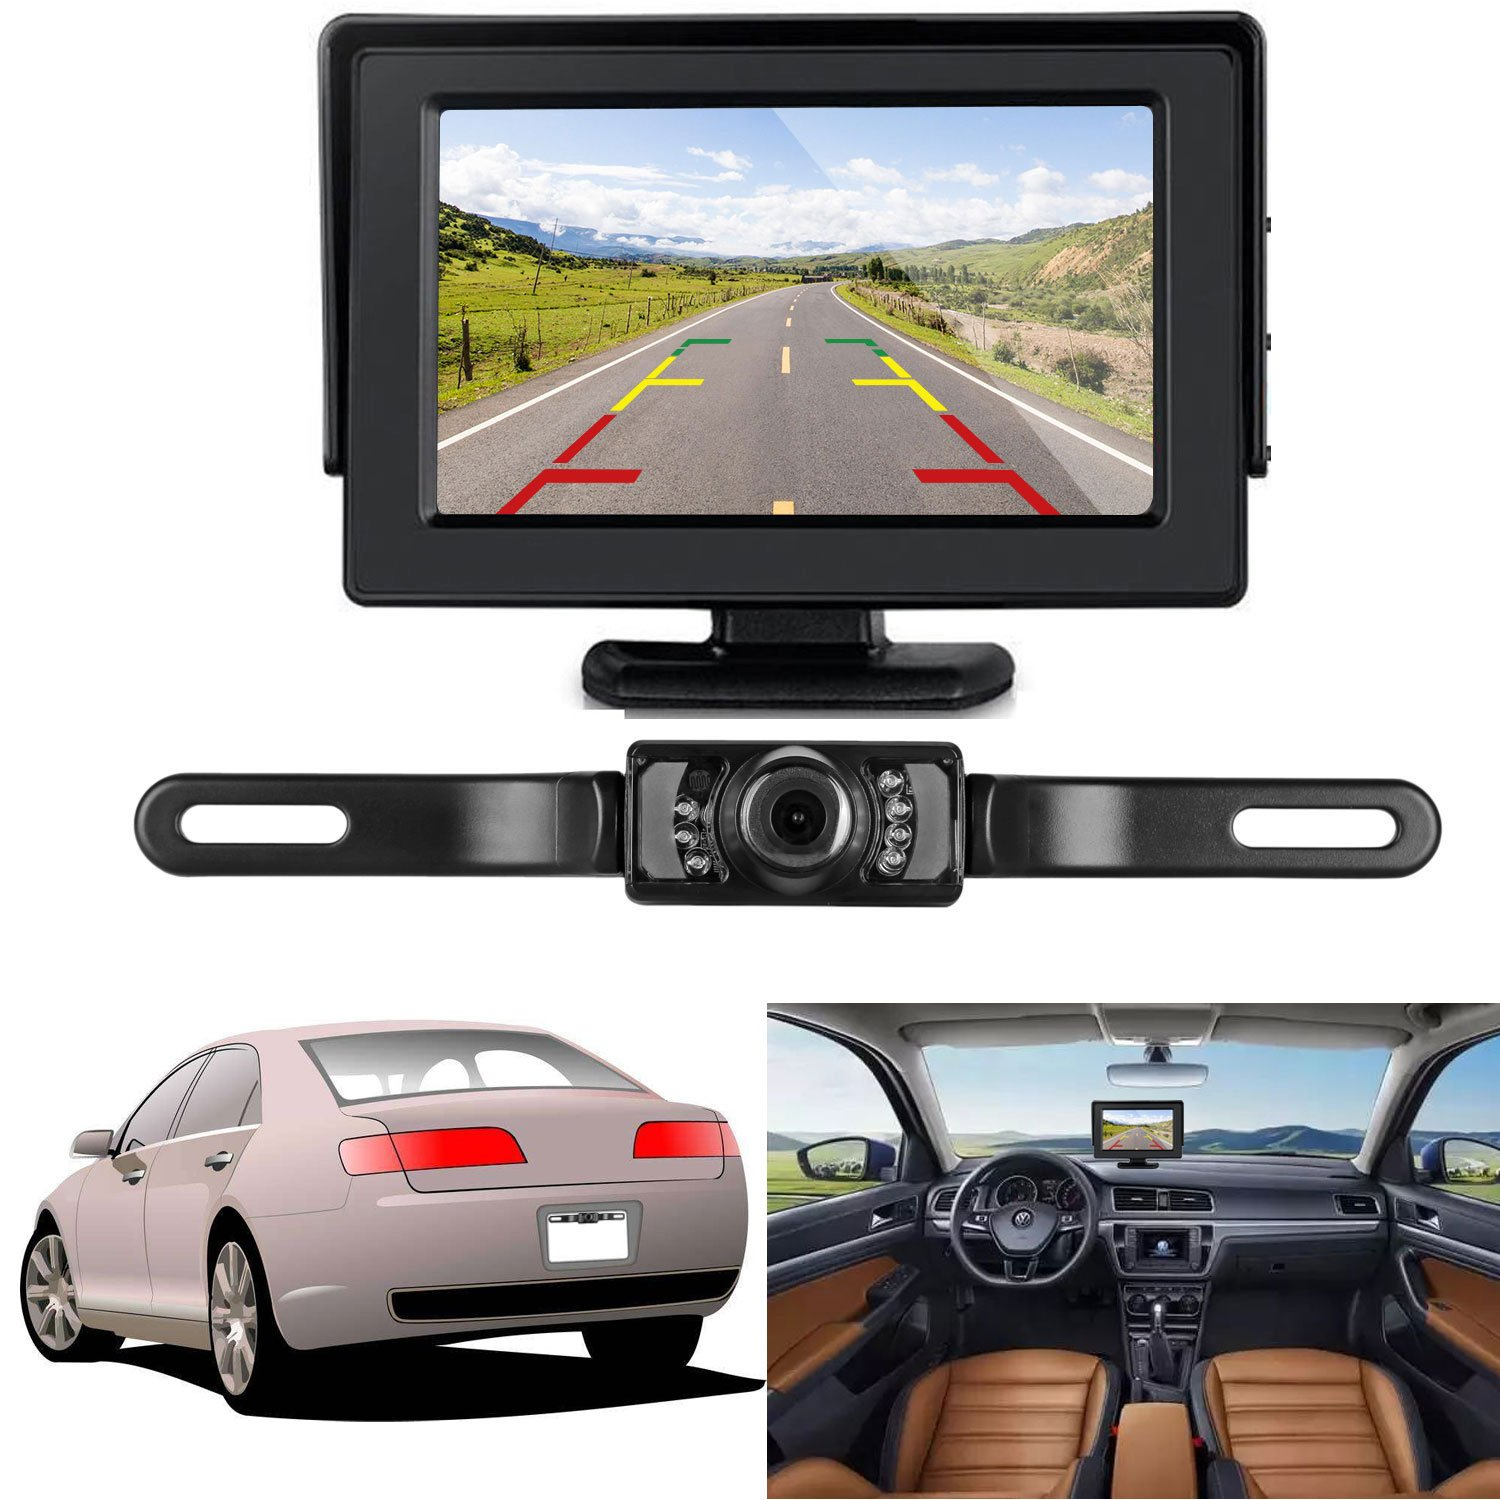 ZSMJ Backup Camera and Monitor Kit Single Power for Rear View/Fulltime View Optional Reverse Camera/Rear View Camera Waterproof Night Vision 4.3 Display with 20ft Video RCA Cable Grid Lines